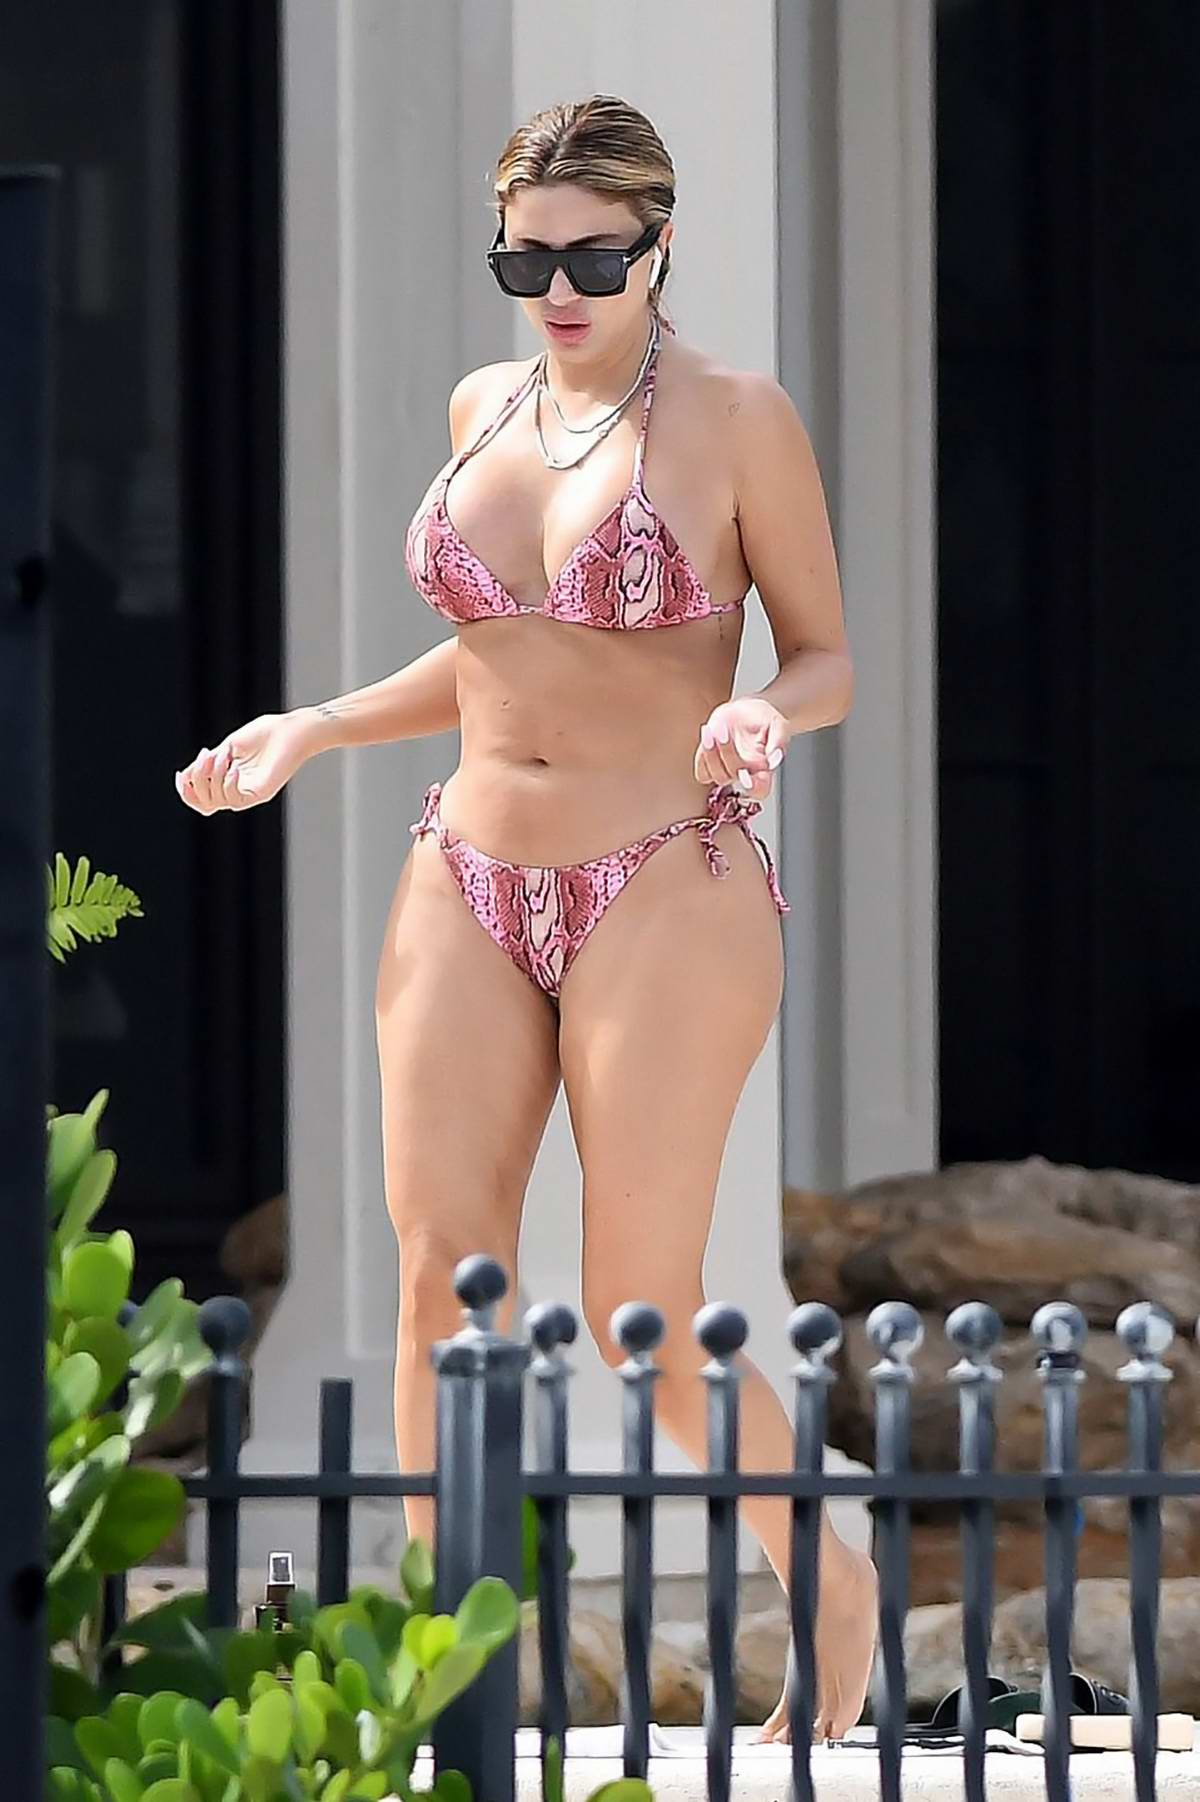 Larsa Pippen soaks up the sun in a pink snakeskin print bikini while enjoying a day in Fort Lauderdale, Florida